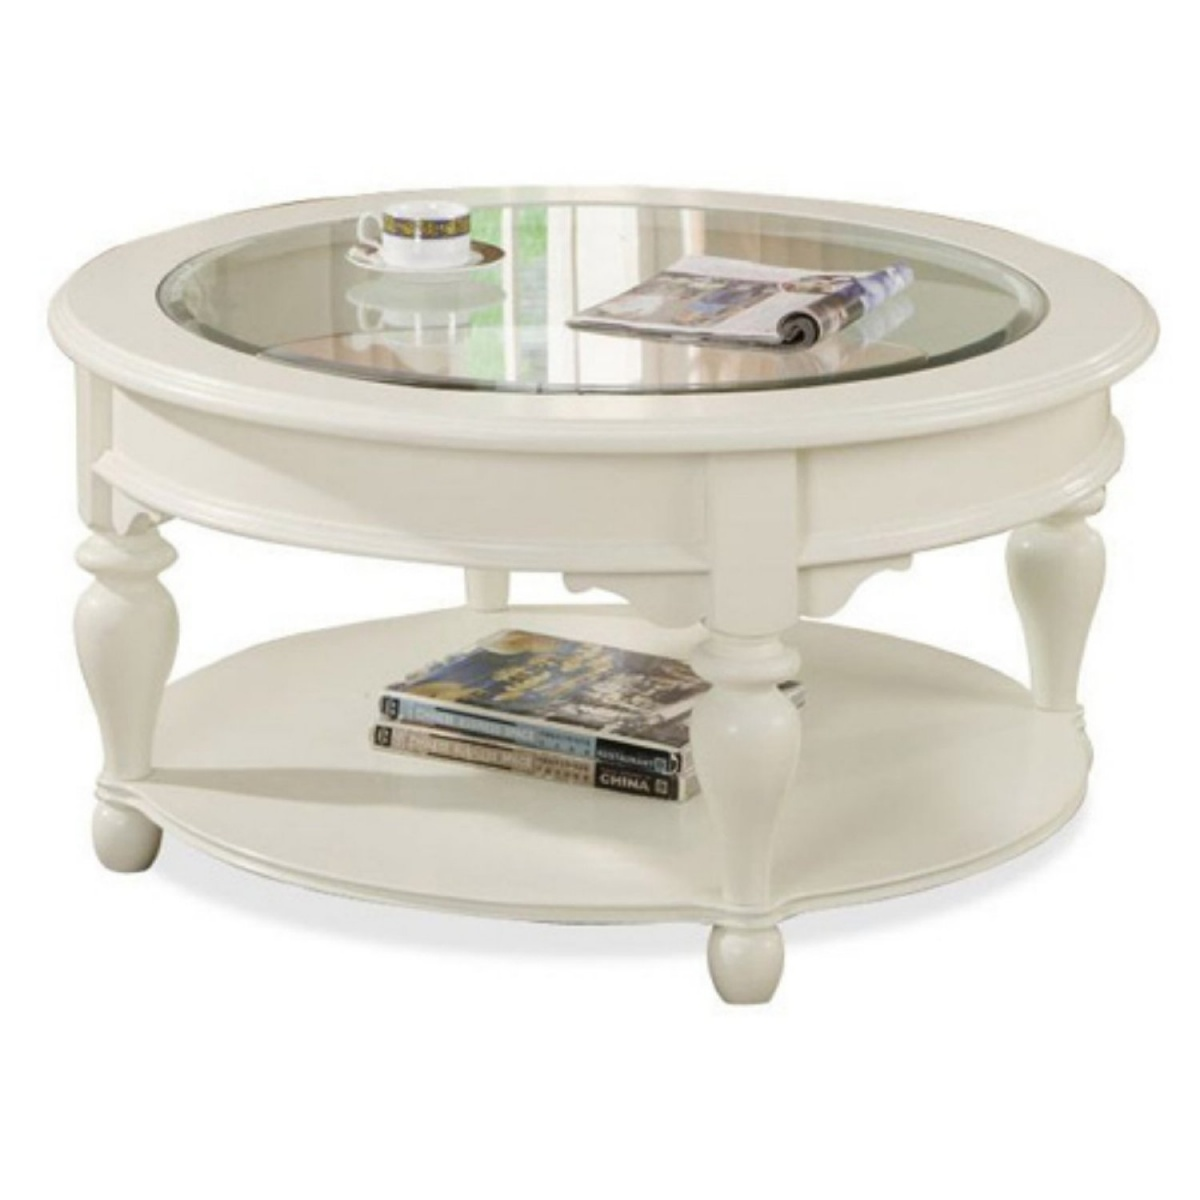 round white coffee table designs spanishorientation marvelous accent tables ikea coolest modern glass top antique black and cream rug winsome with drawer concrete look ice box